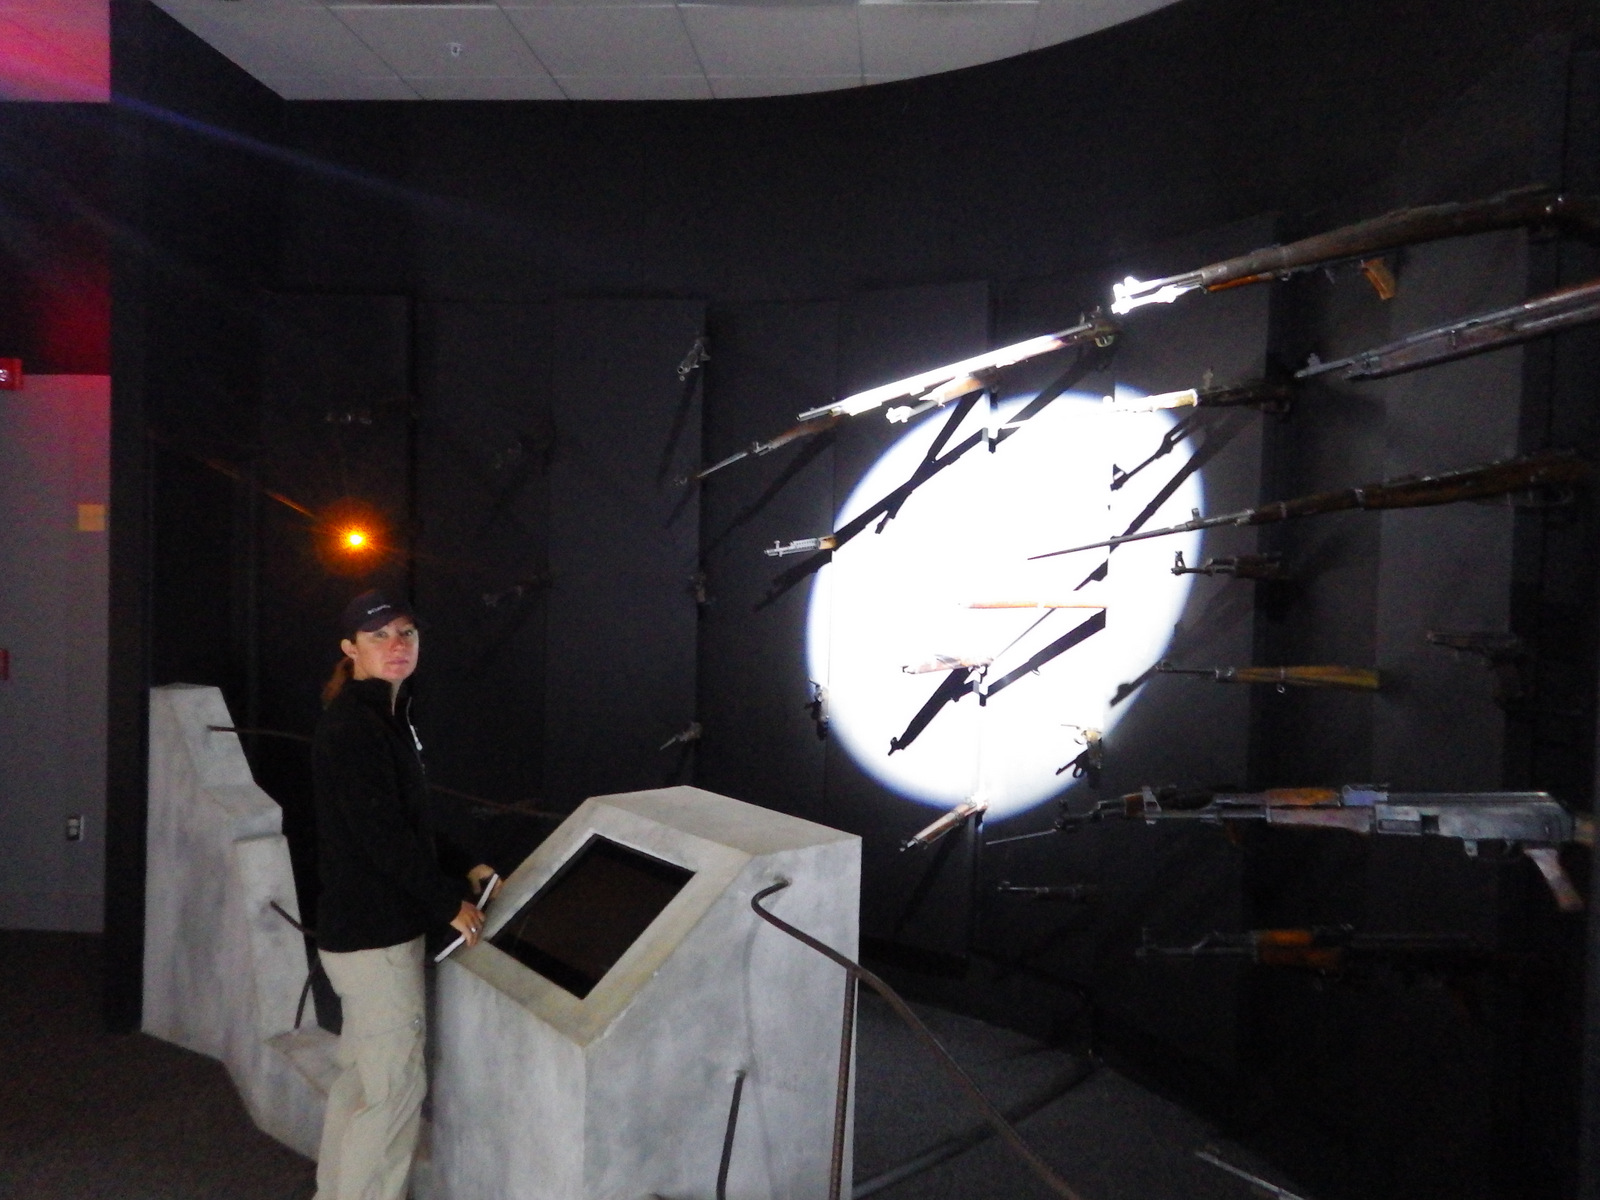 Tiff in the POW museum (those are all guns trained on her)